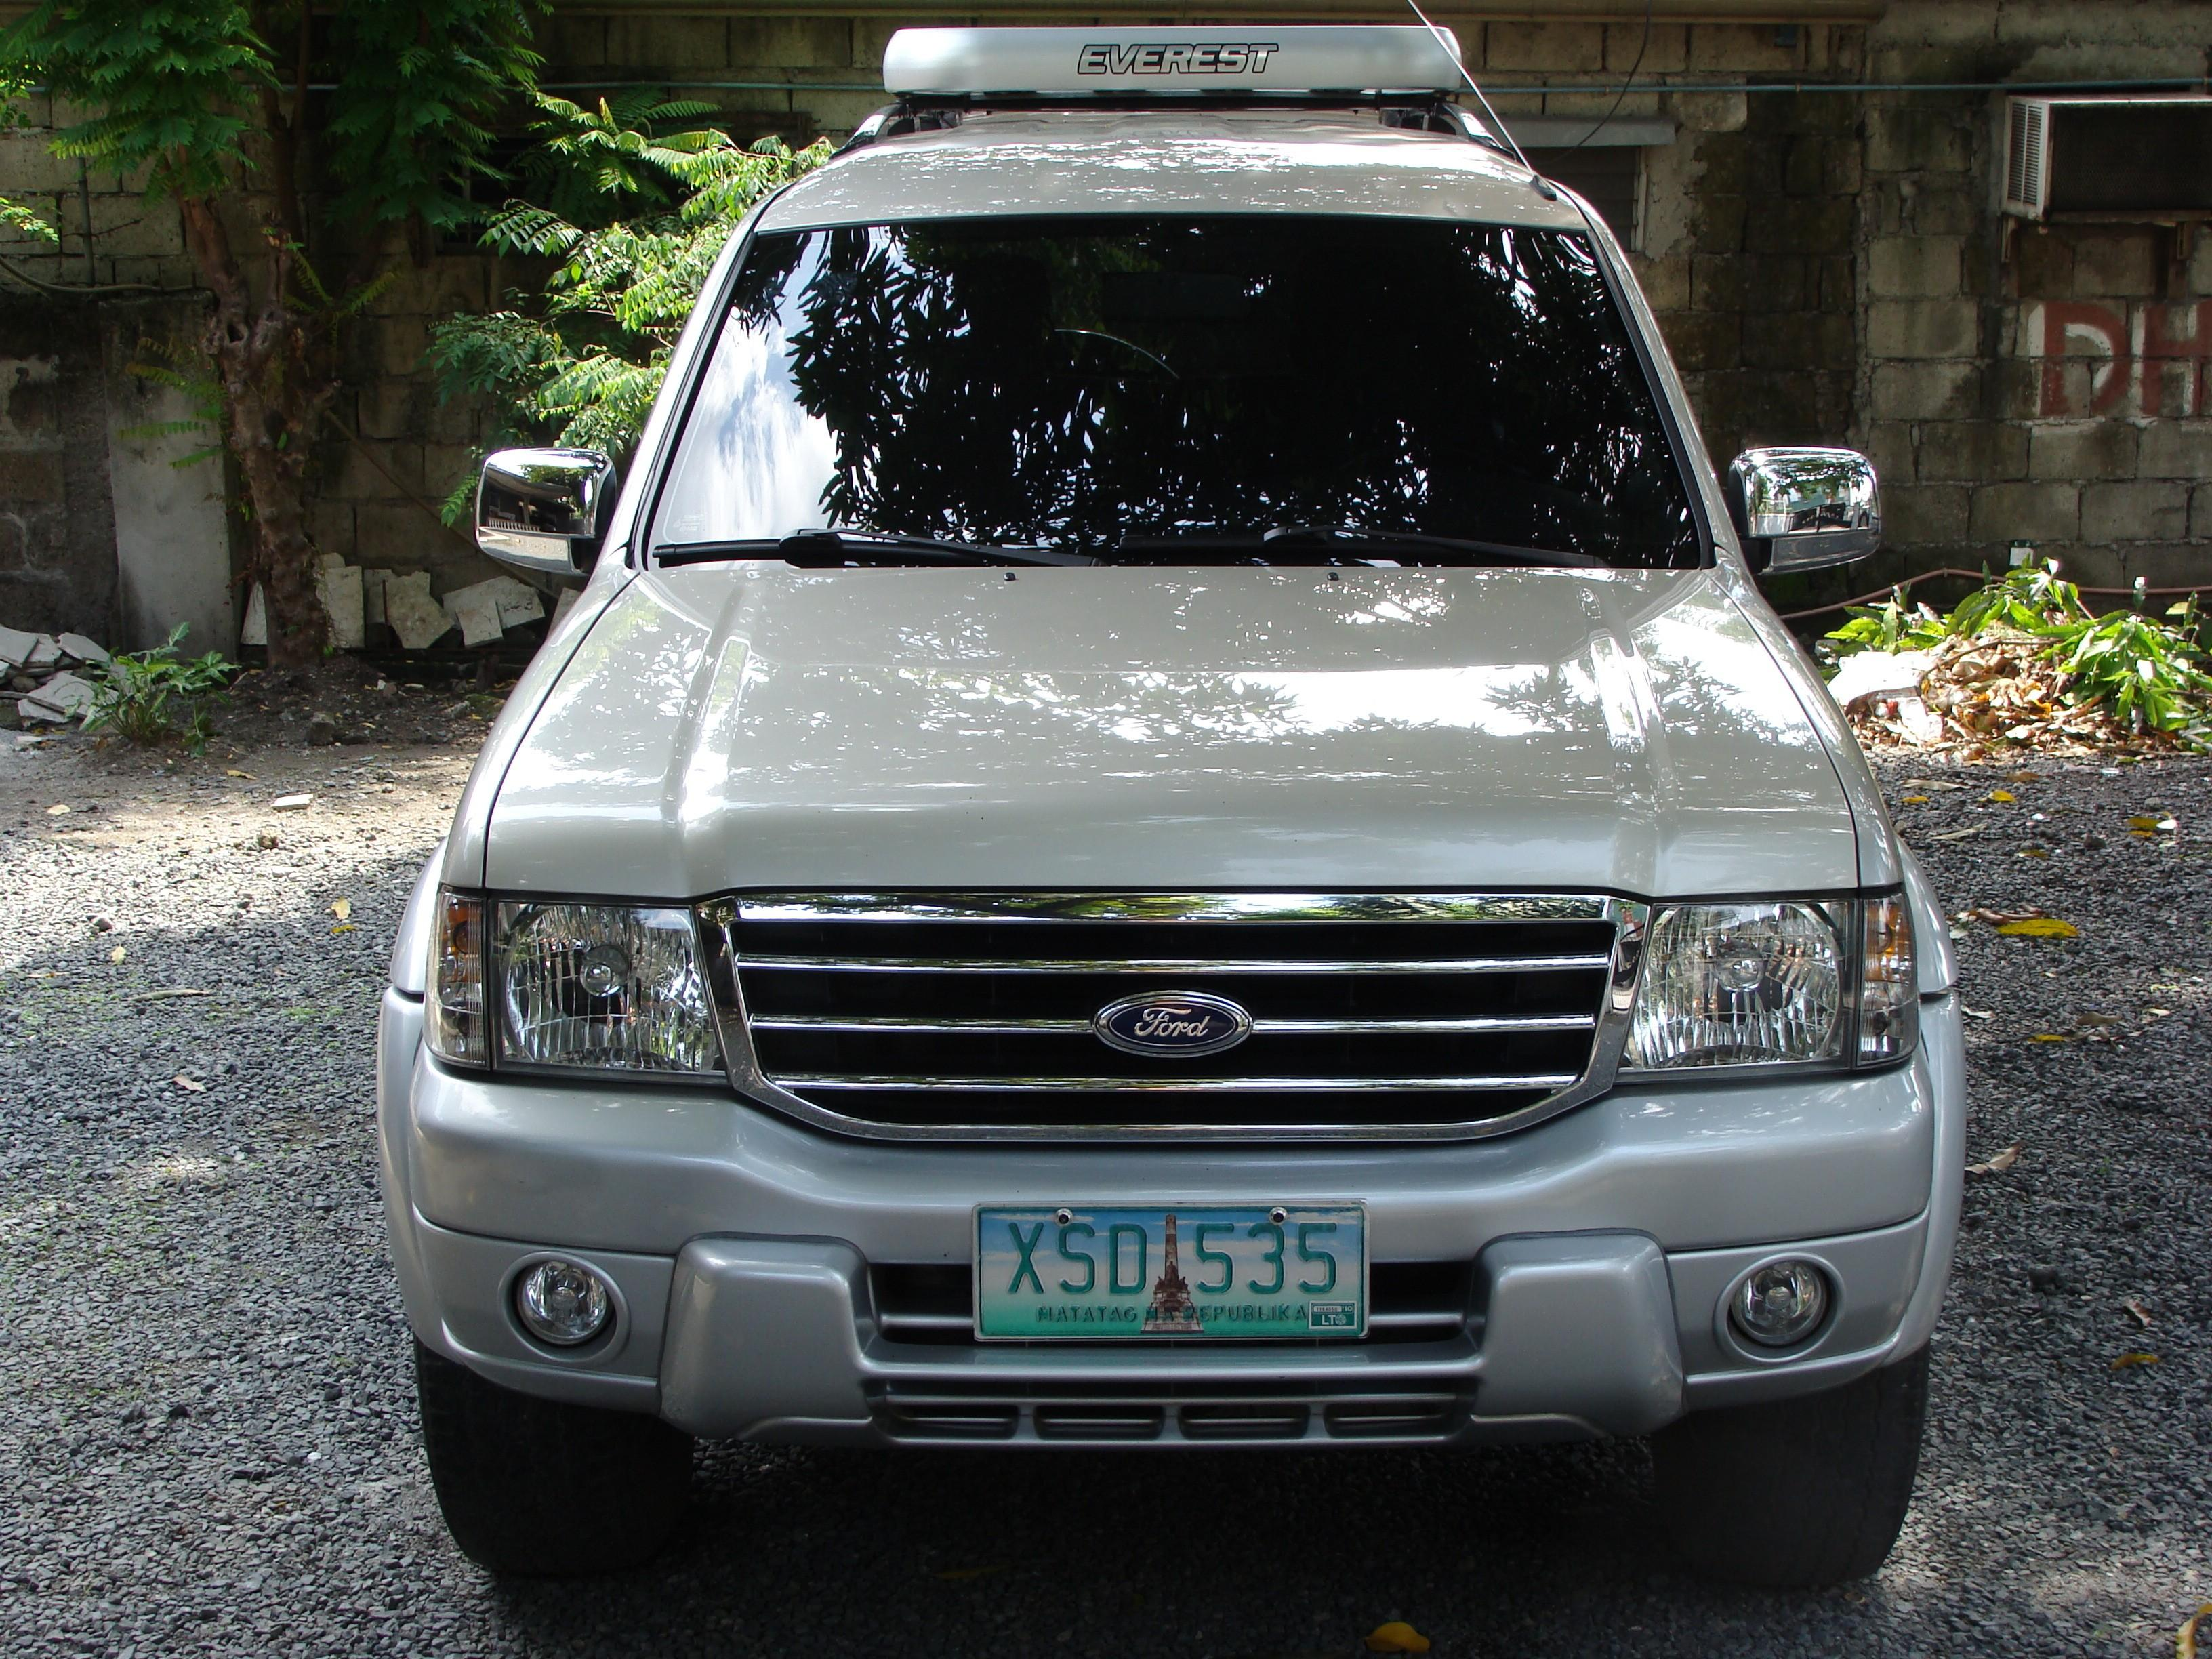 tim149750's 2004 Ford Everest